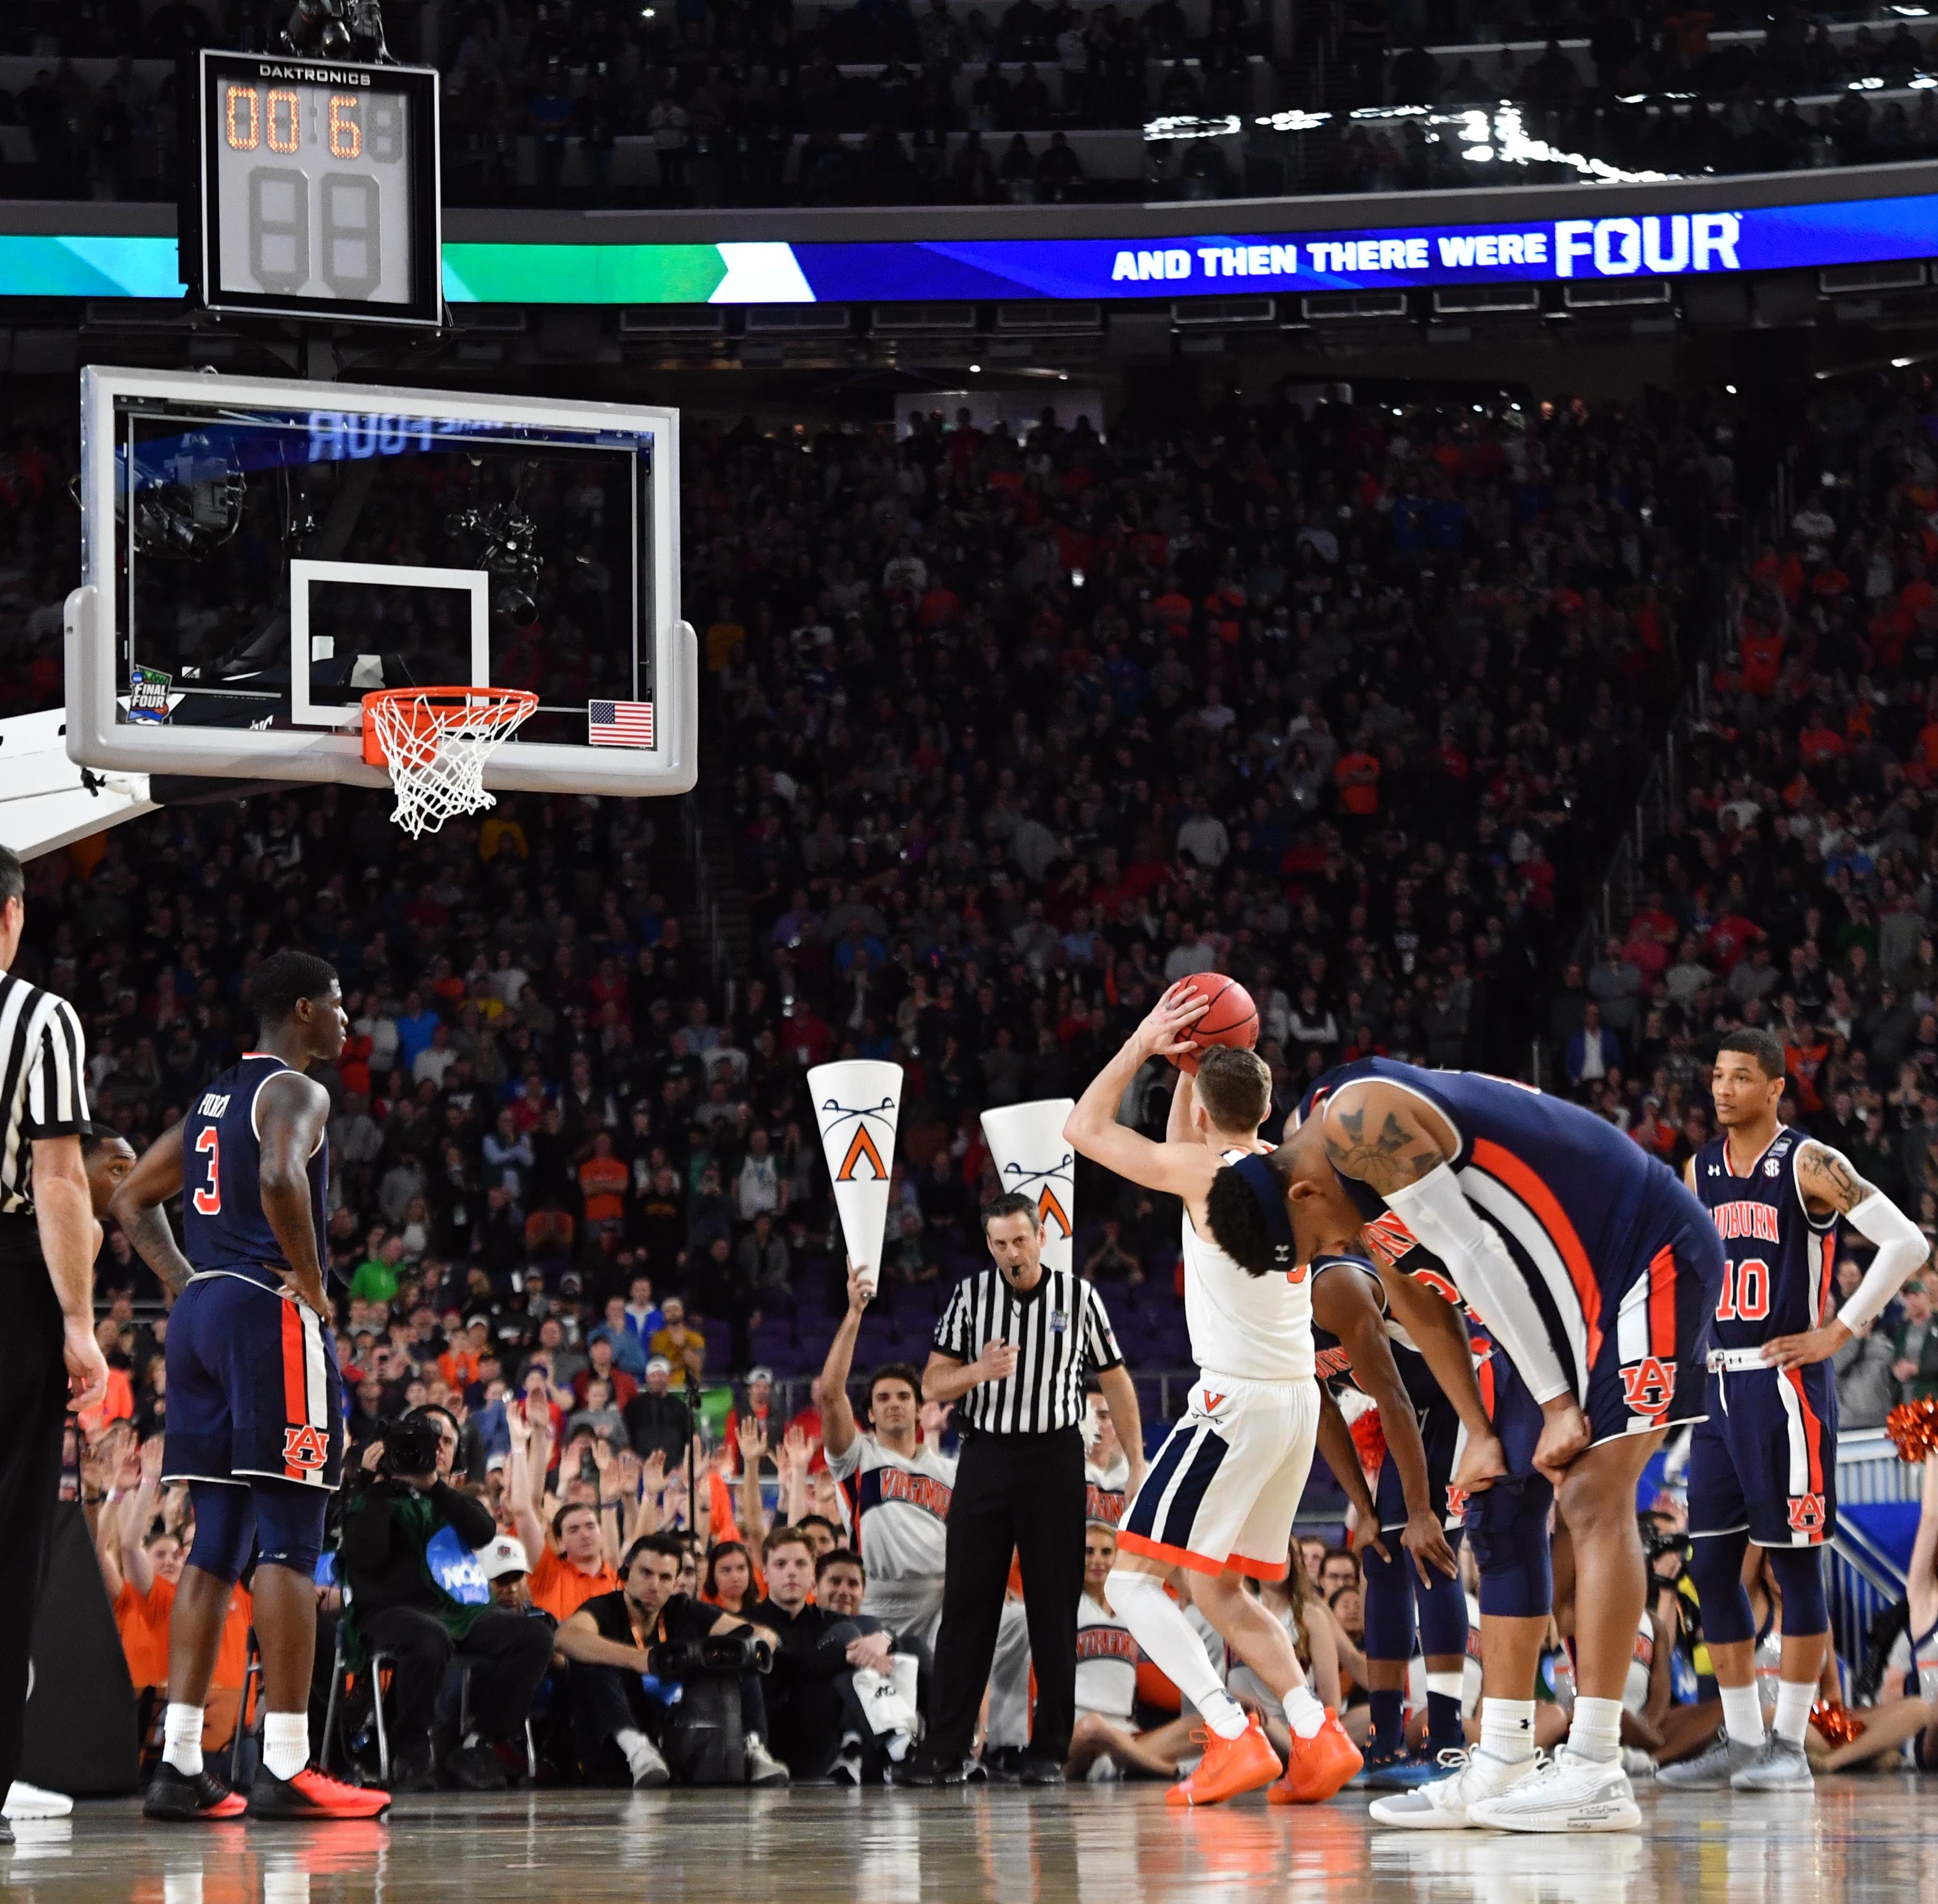 Heartbreak: Auburn's dream season ends with late foul call against Virginia in Final Four